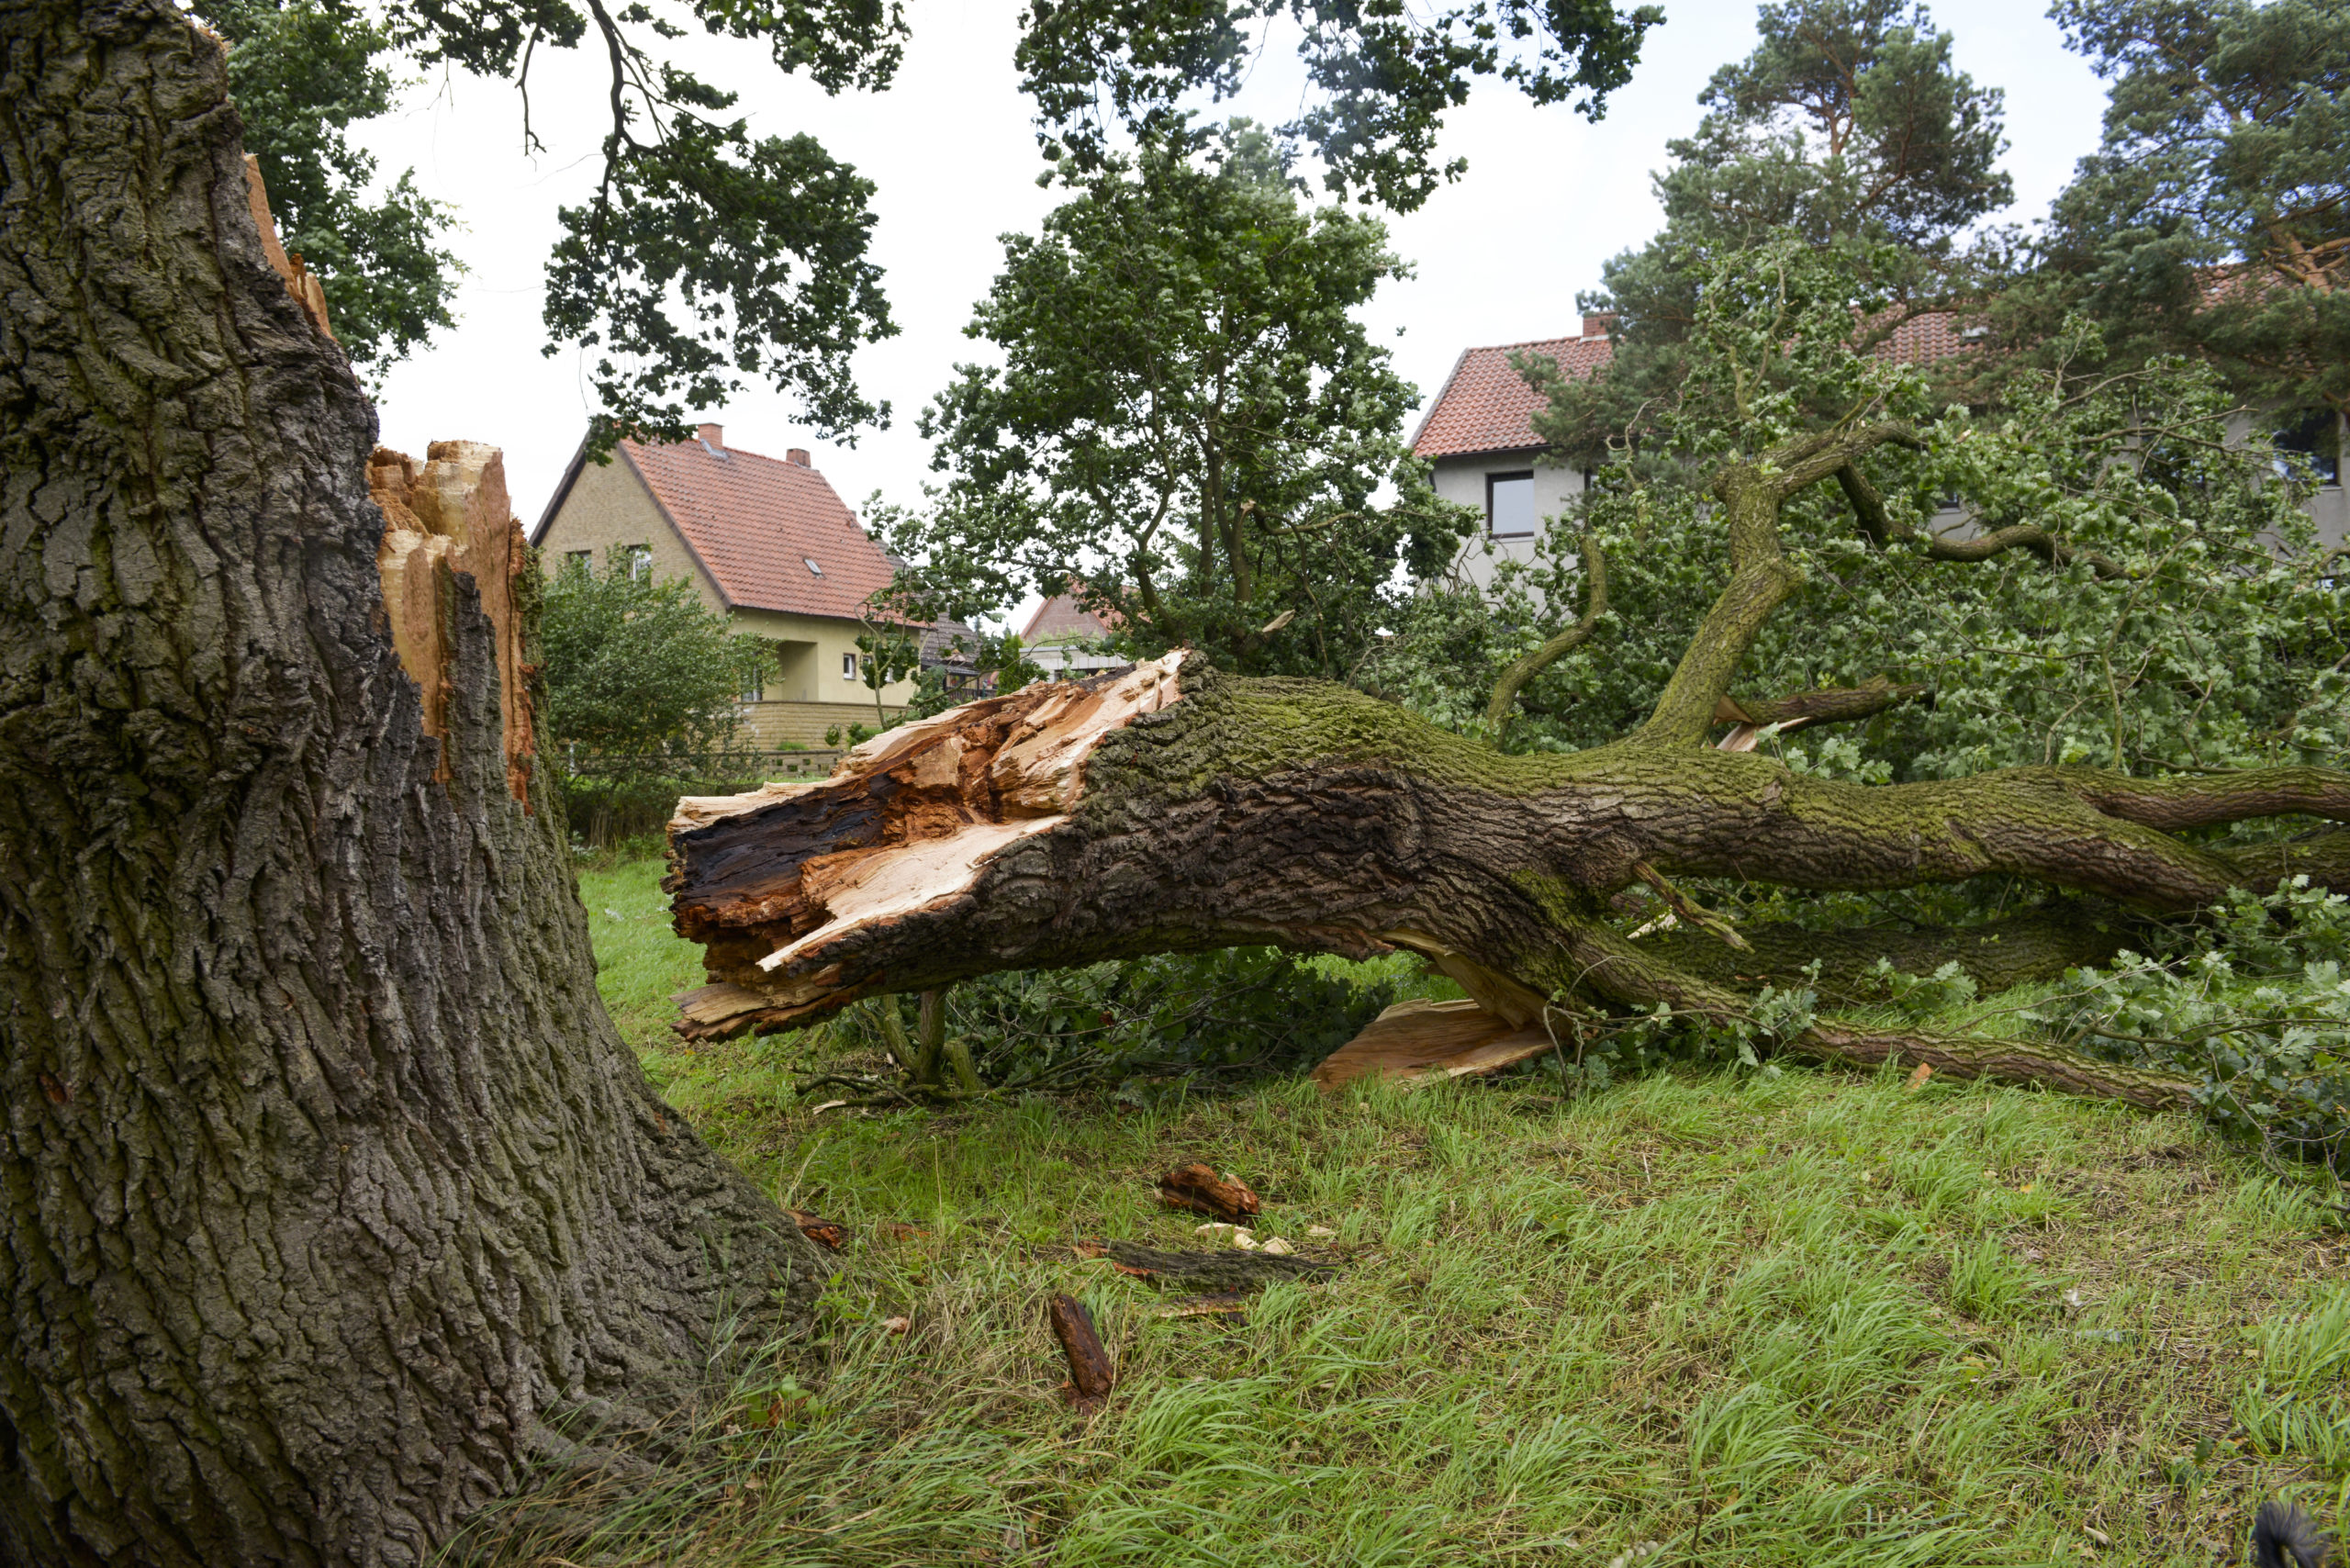 Storm damage, tree uprooted